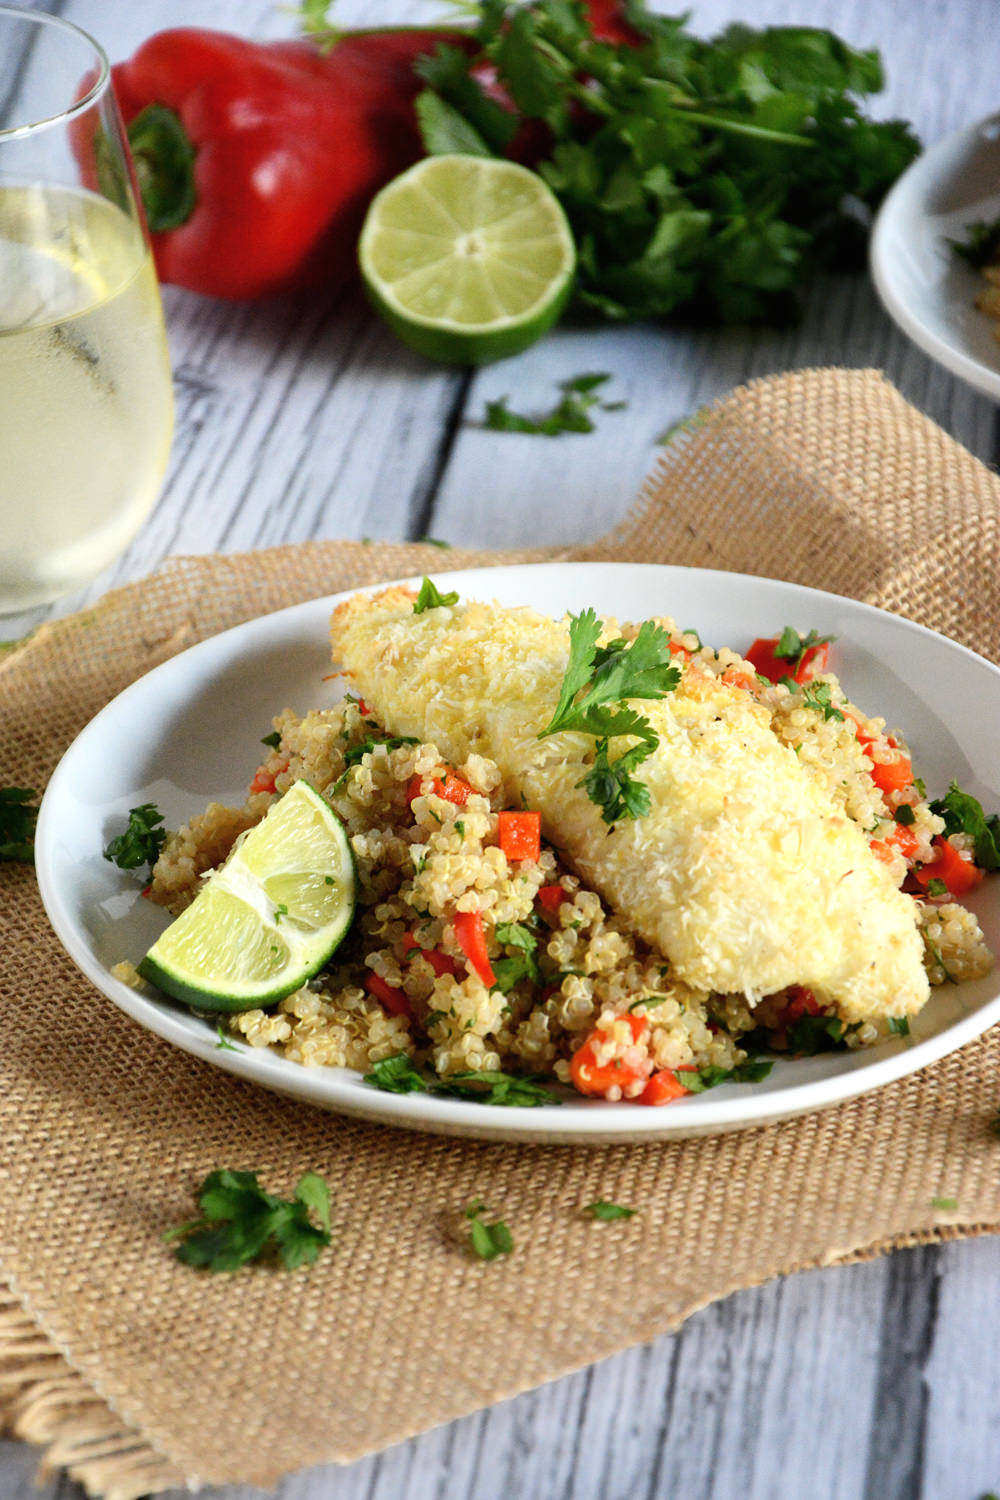 Tender tilapia filets with a sweet and spicy crust of macadamia nuts ...